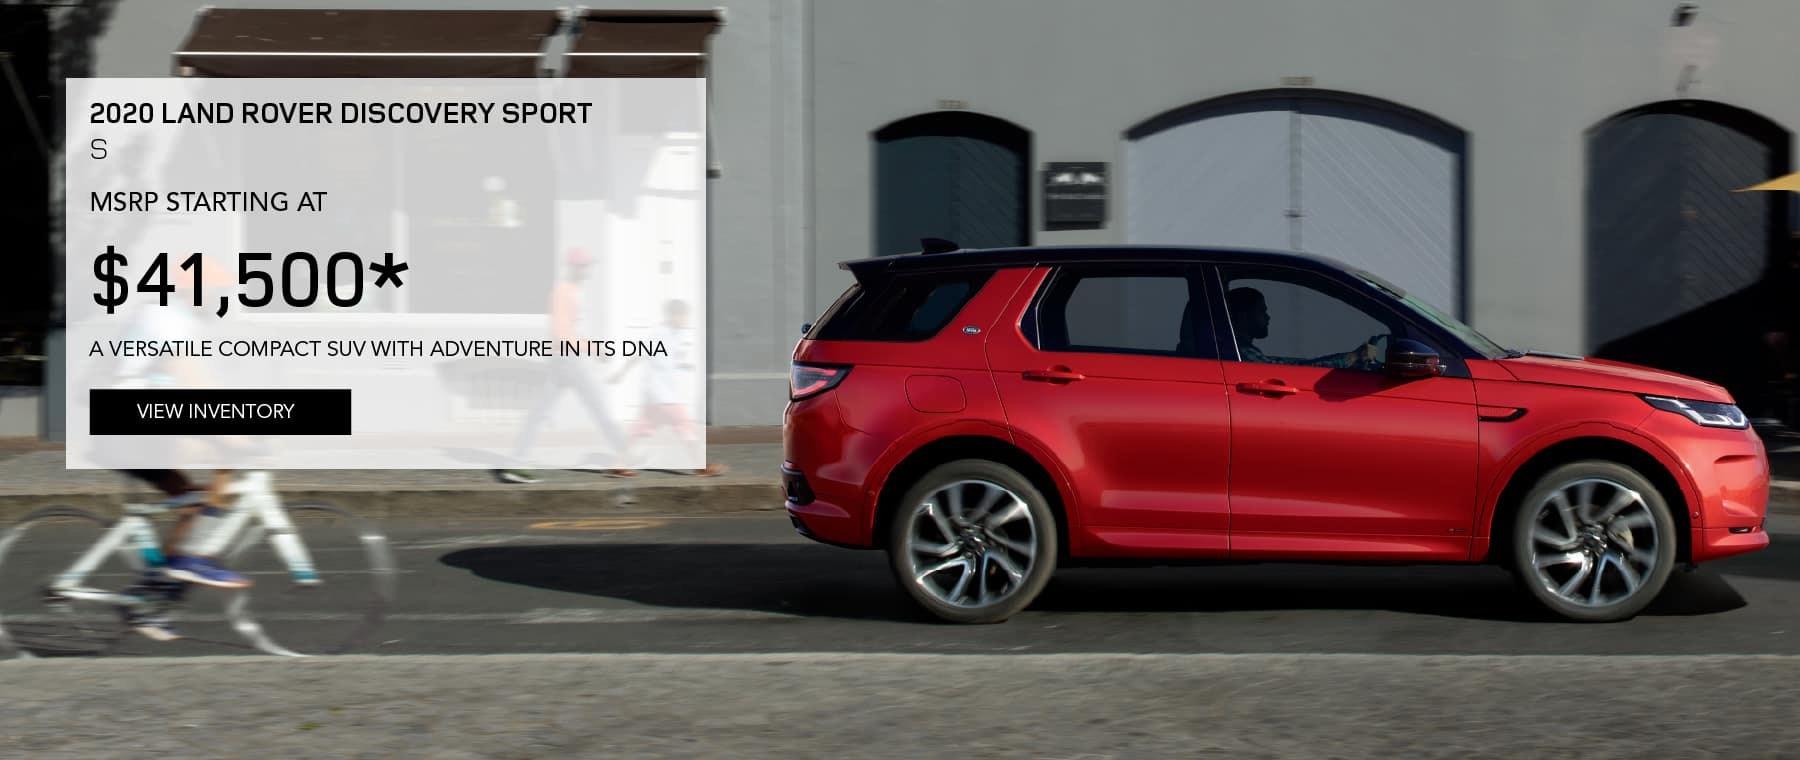 2020 LAND ROVER DISCOVERY SPORT S. MSRP STARTING AT $41,500. A VERSATILE COMPACT SUV WITH ADVENTURE IN ITS DNA. VIEW INVENTORY. RED LAND ROVER DISCOVERY SPORT S DRIVING DOWN ROAD IN CITY.